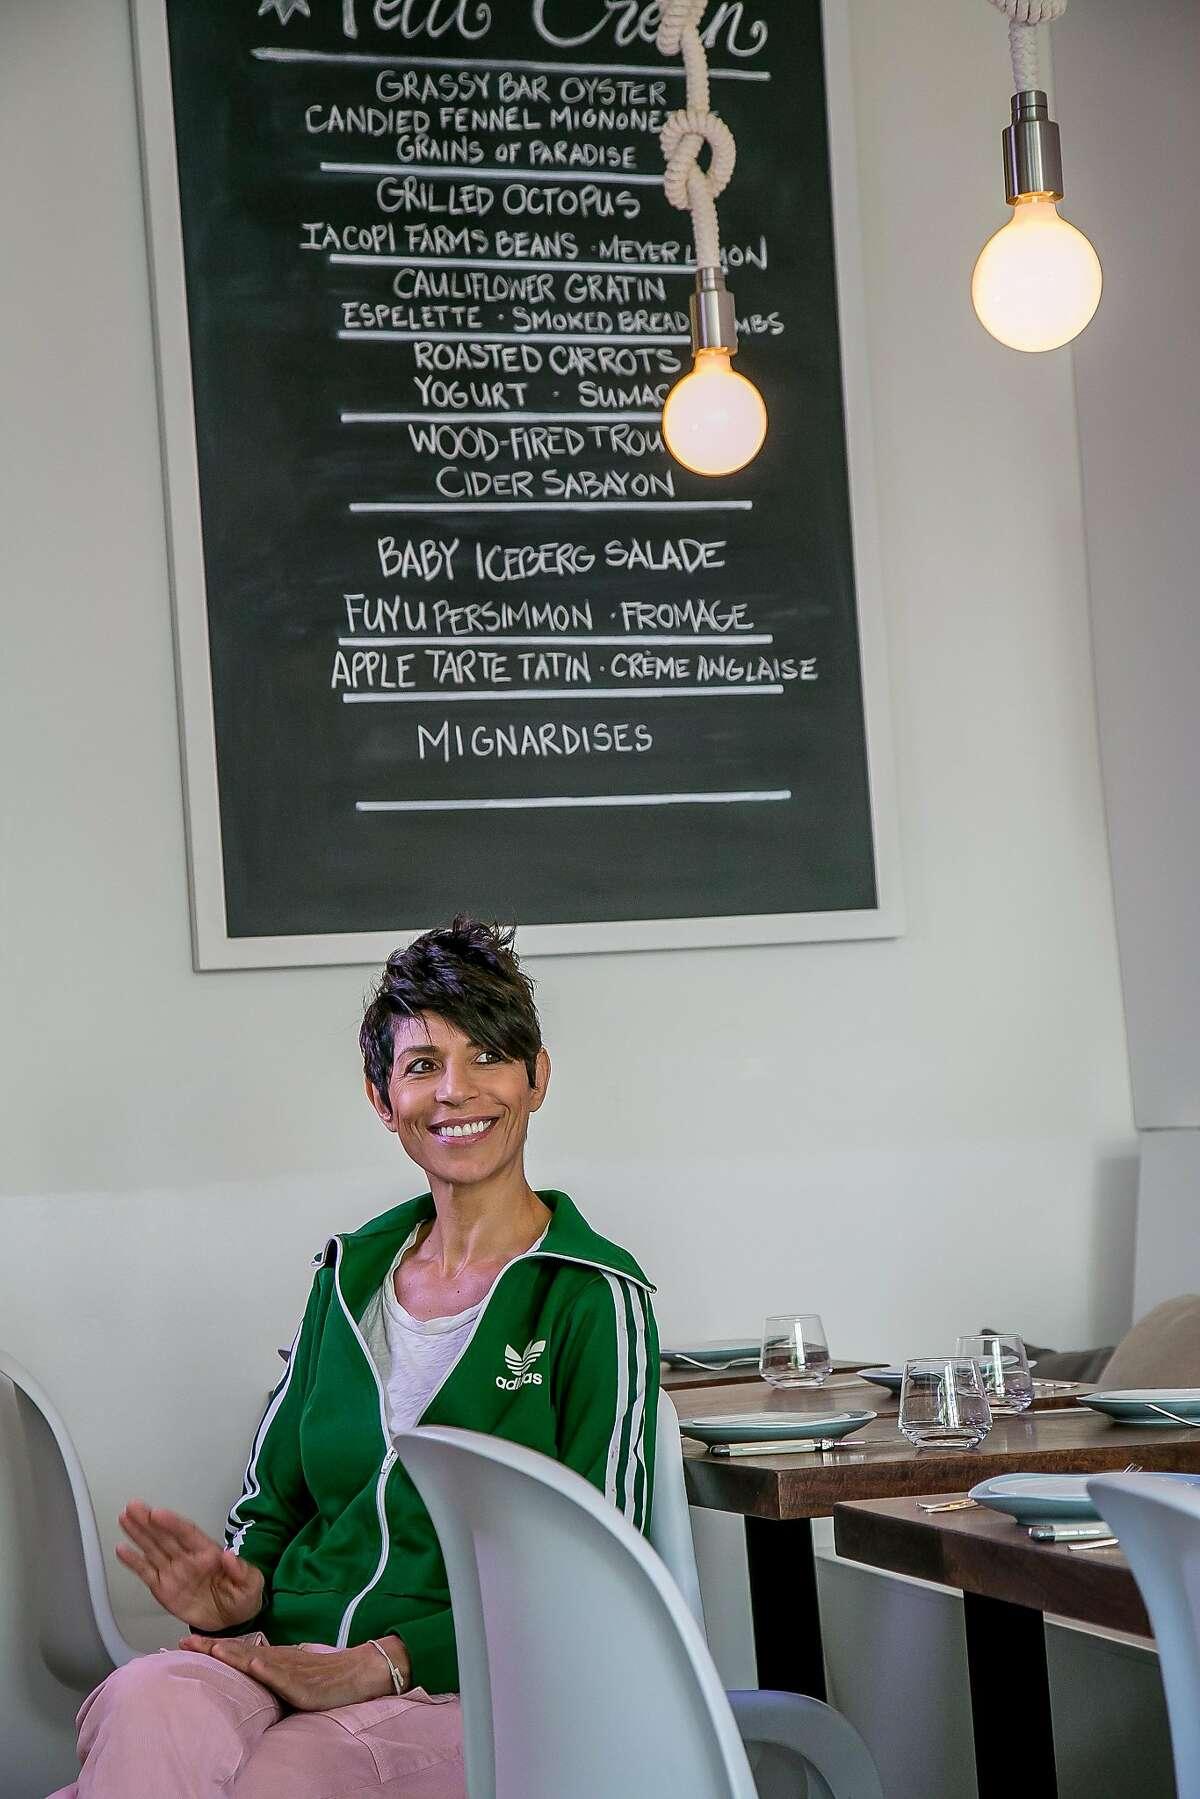 Chef Dominique Crenn at Petit Crenn in San Francisco, Calif. is seen on Saturday, October 3rd, 2015.